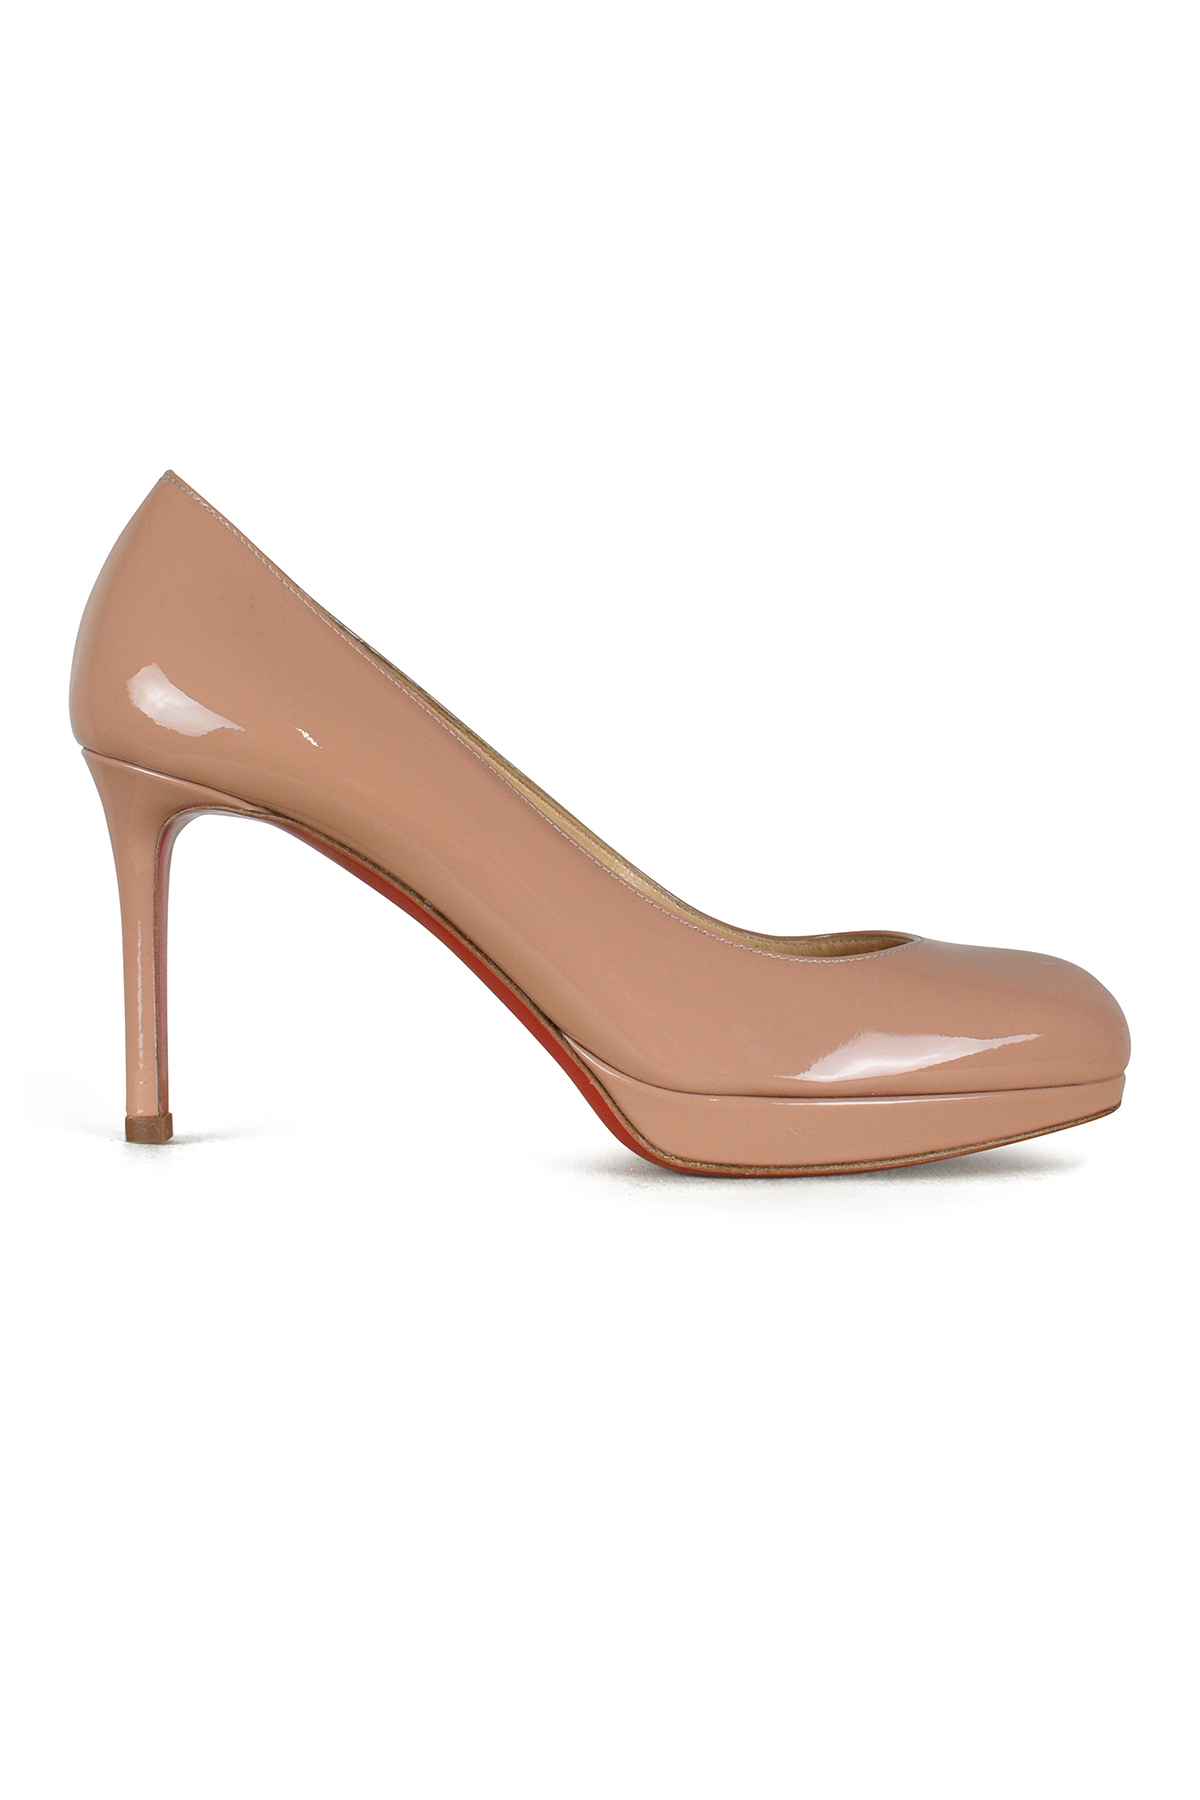 Christian Louboutin New Simple 85 pumps